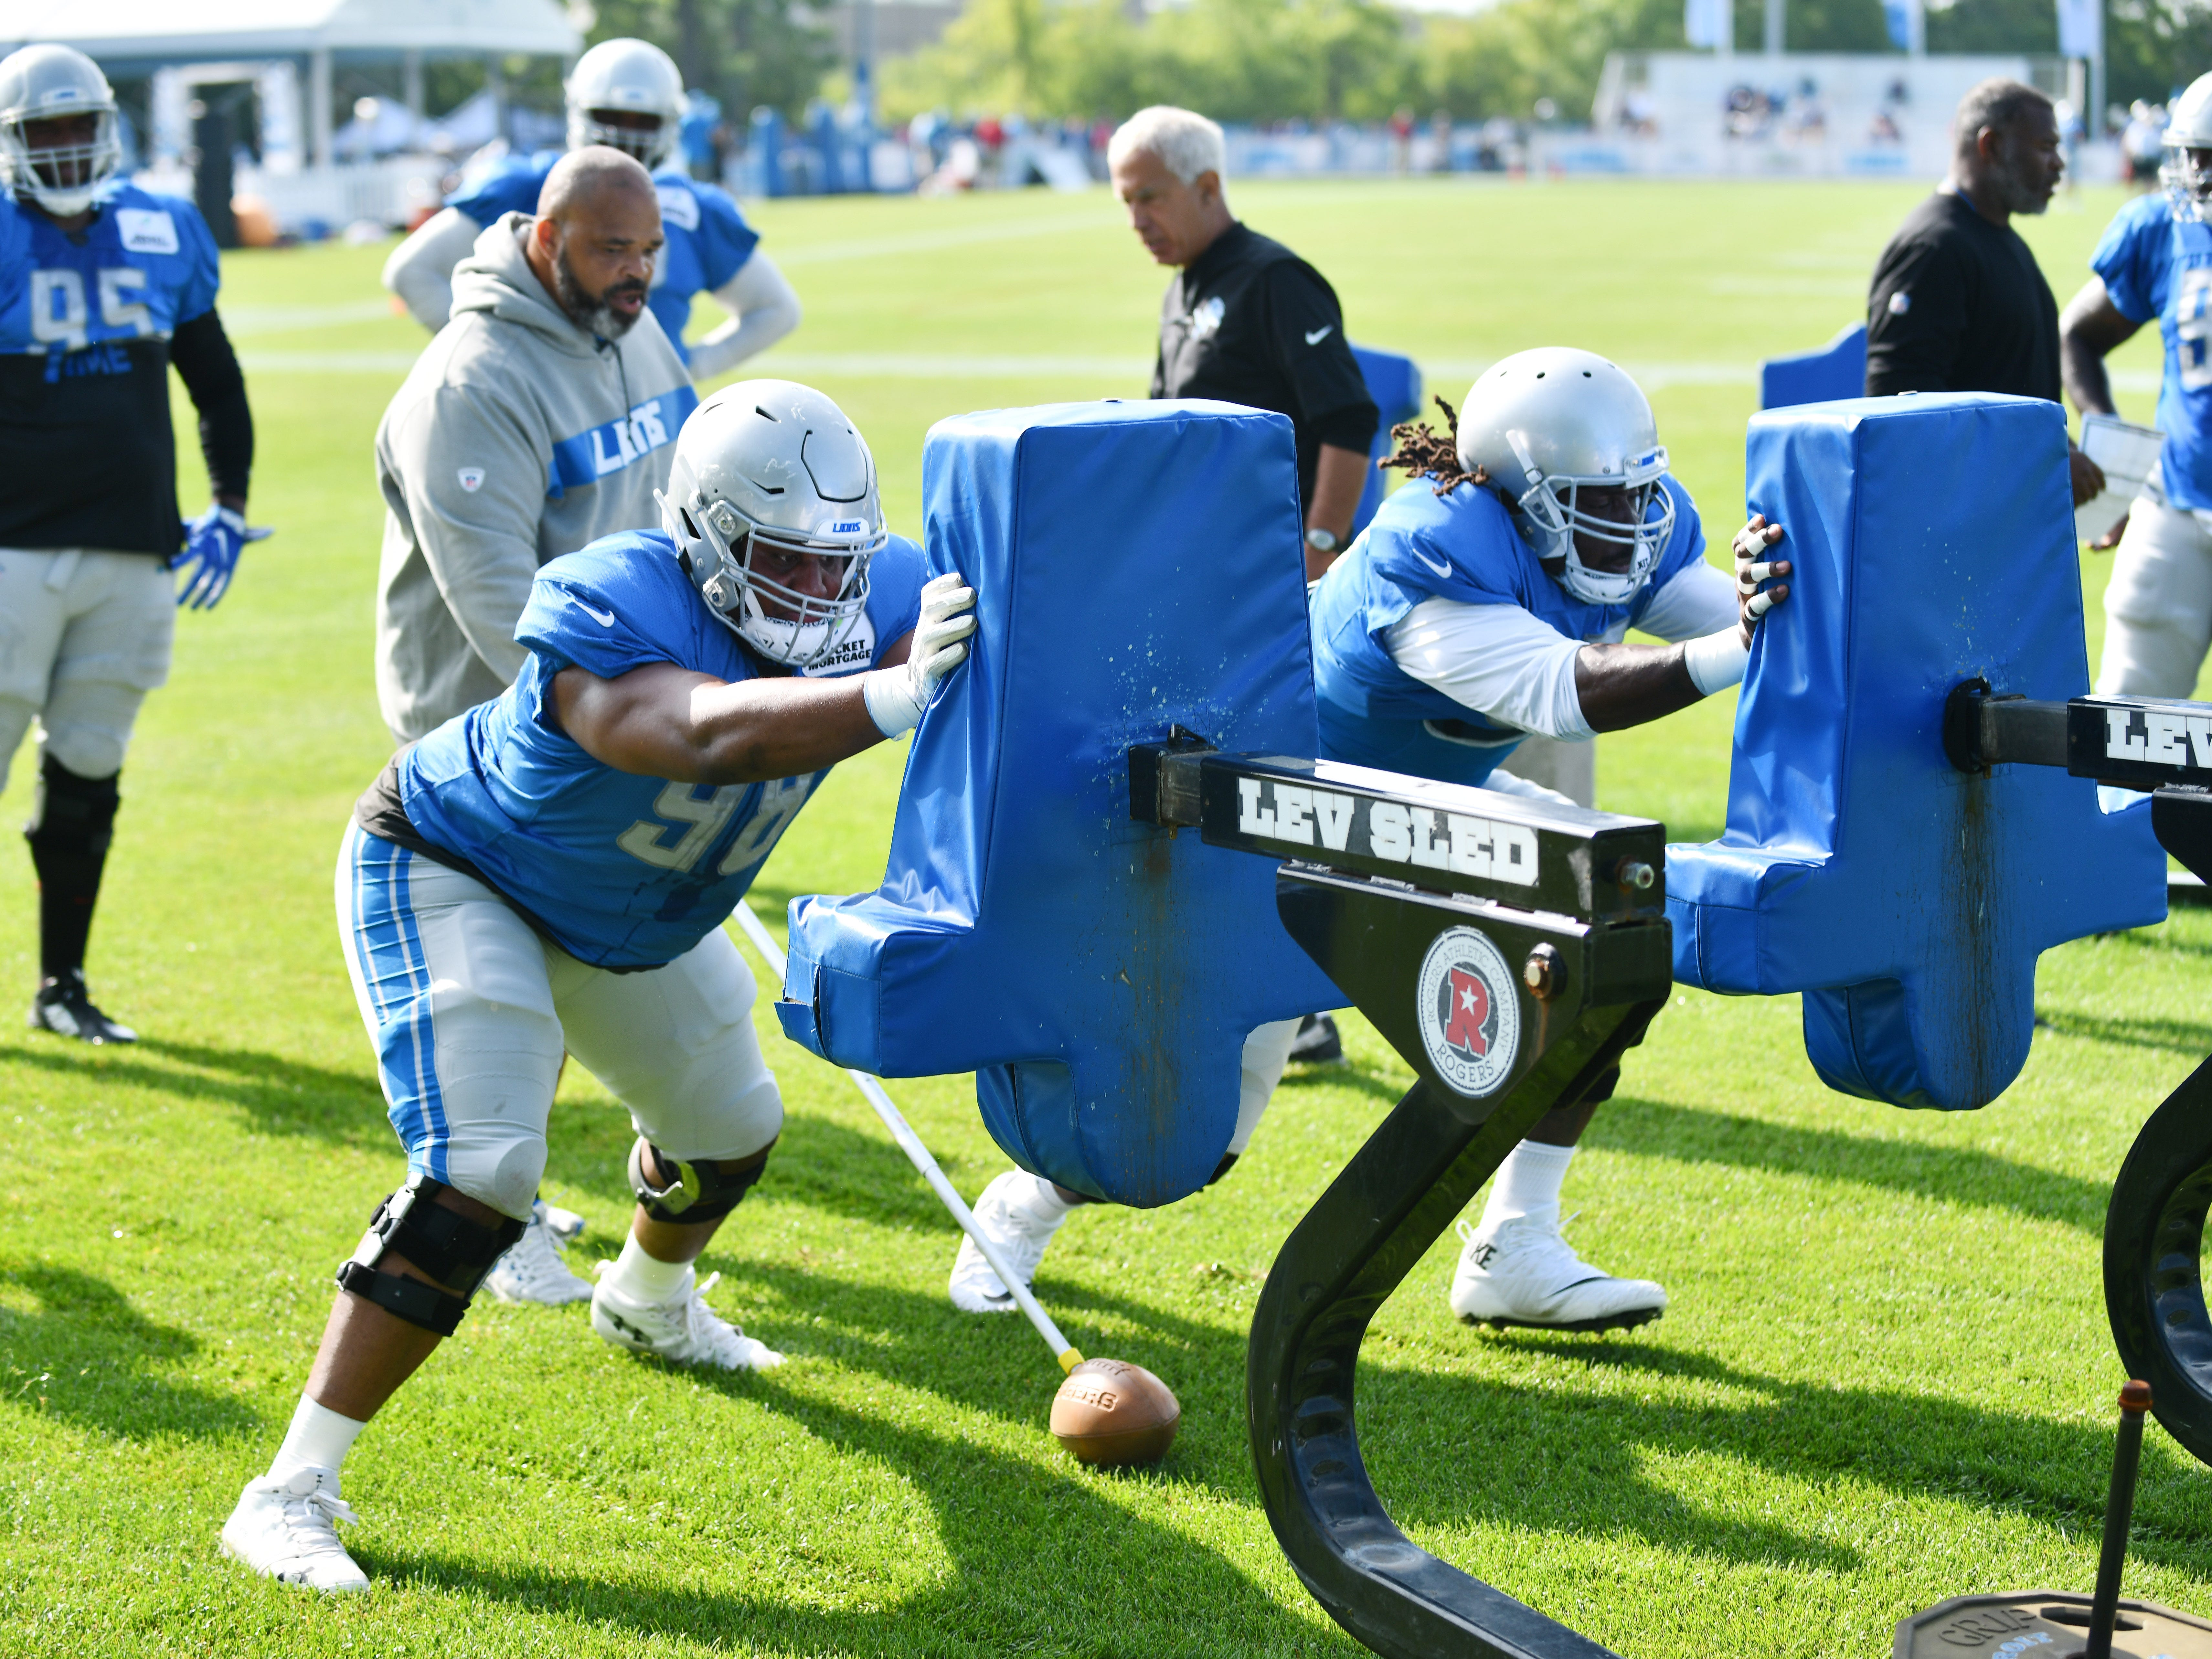 Lions defensive tackles Jeremiah Ledbetter and Ricky Jean Francois hit the sled during drills.